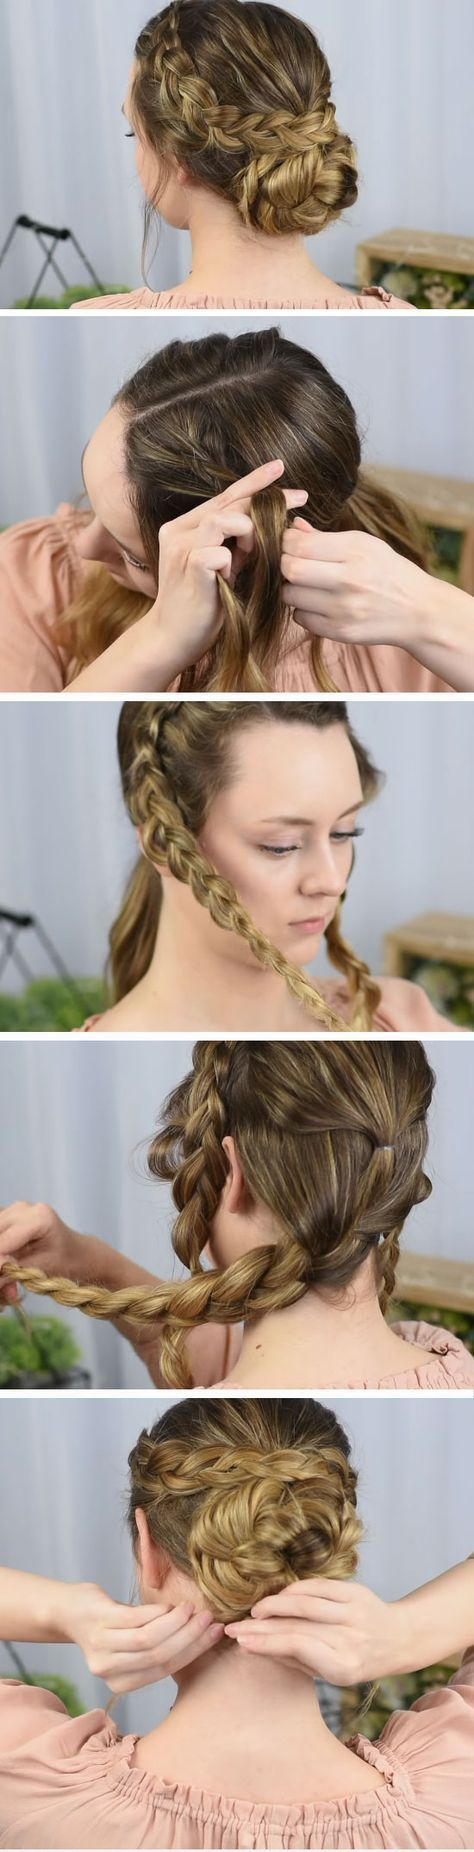 Dutch braided updo quick diy prom hairstyles for medium hair